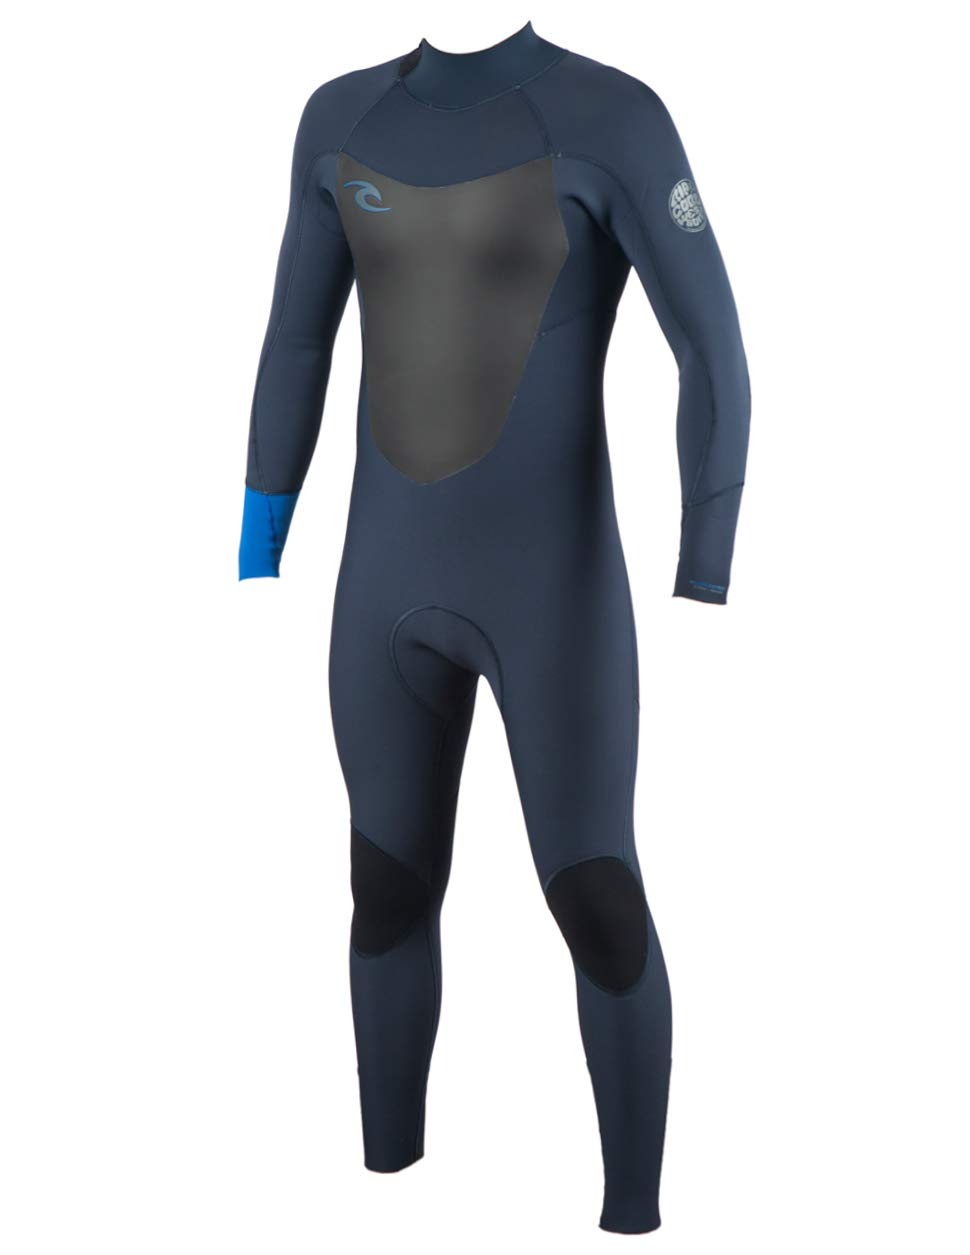 Rip Curl Dawn Patrol Back Zip 4/3 Wetsuit, Blue, X-Large by Rip Curl